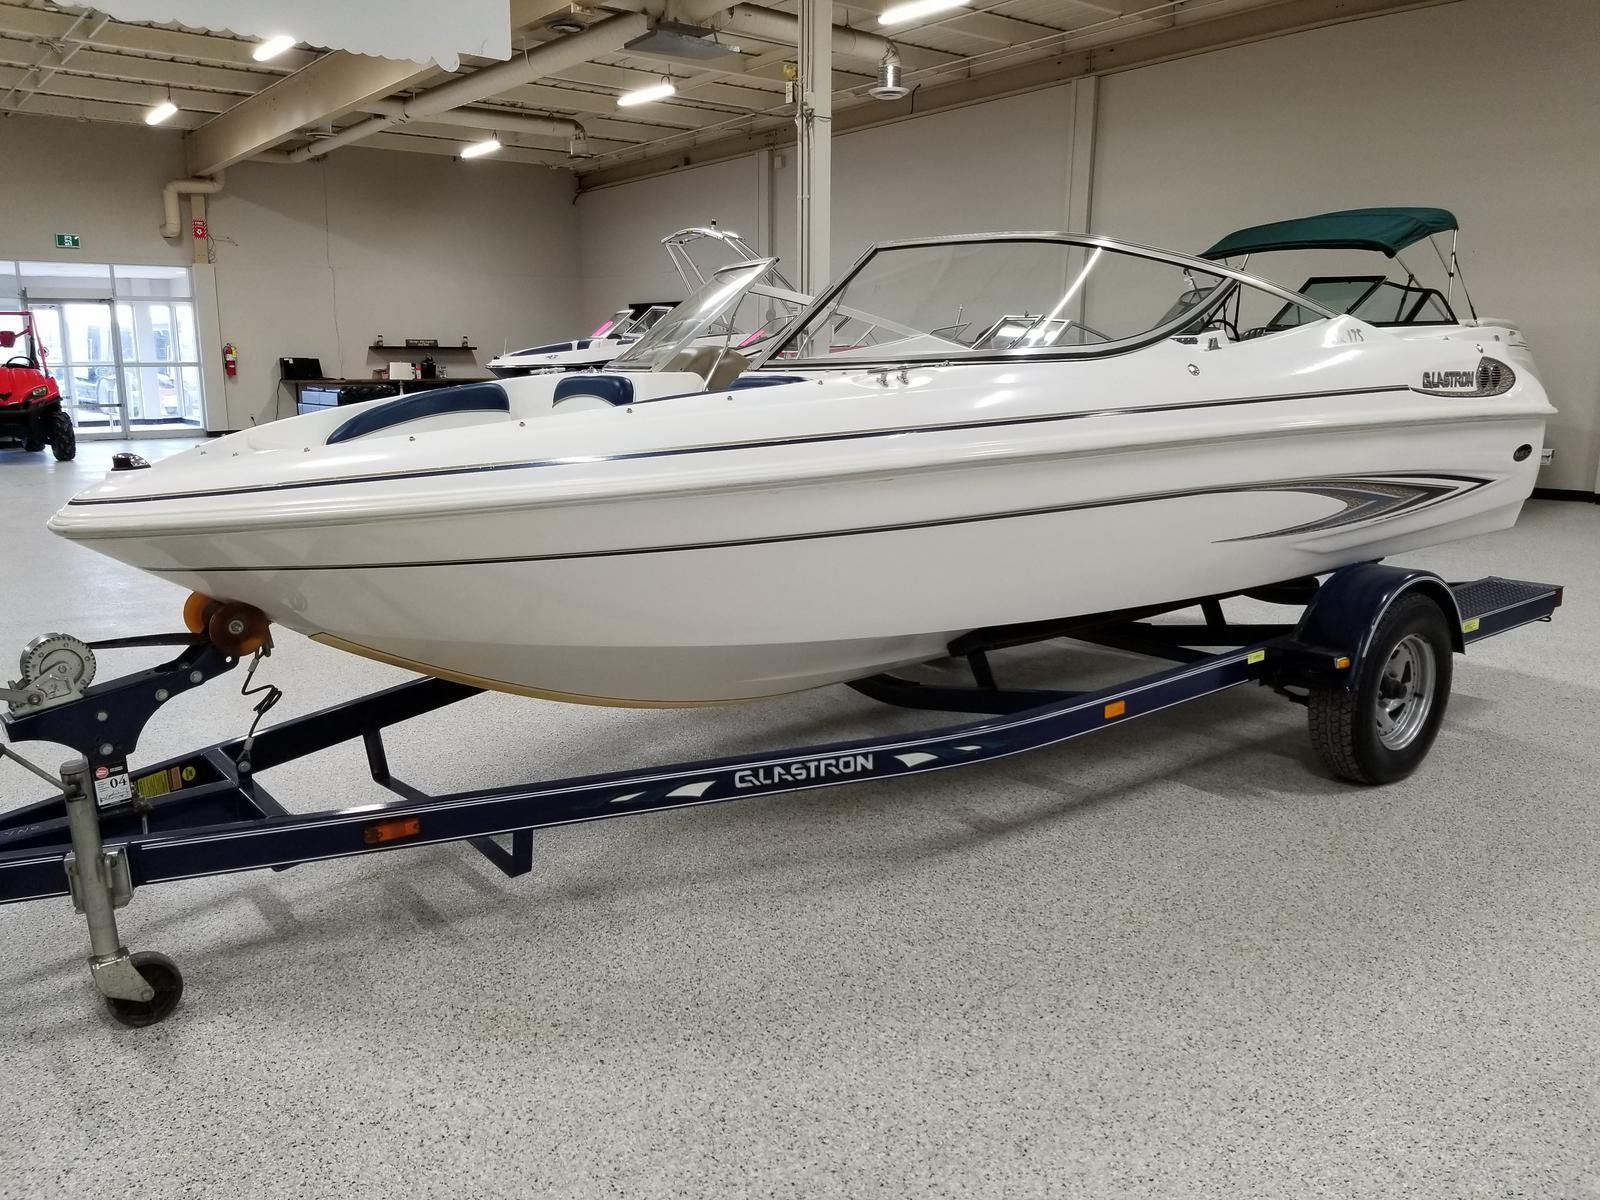 Inventory from Honda, Glastron and Bayliner All Seasons